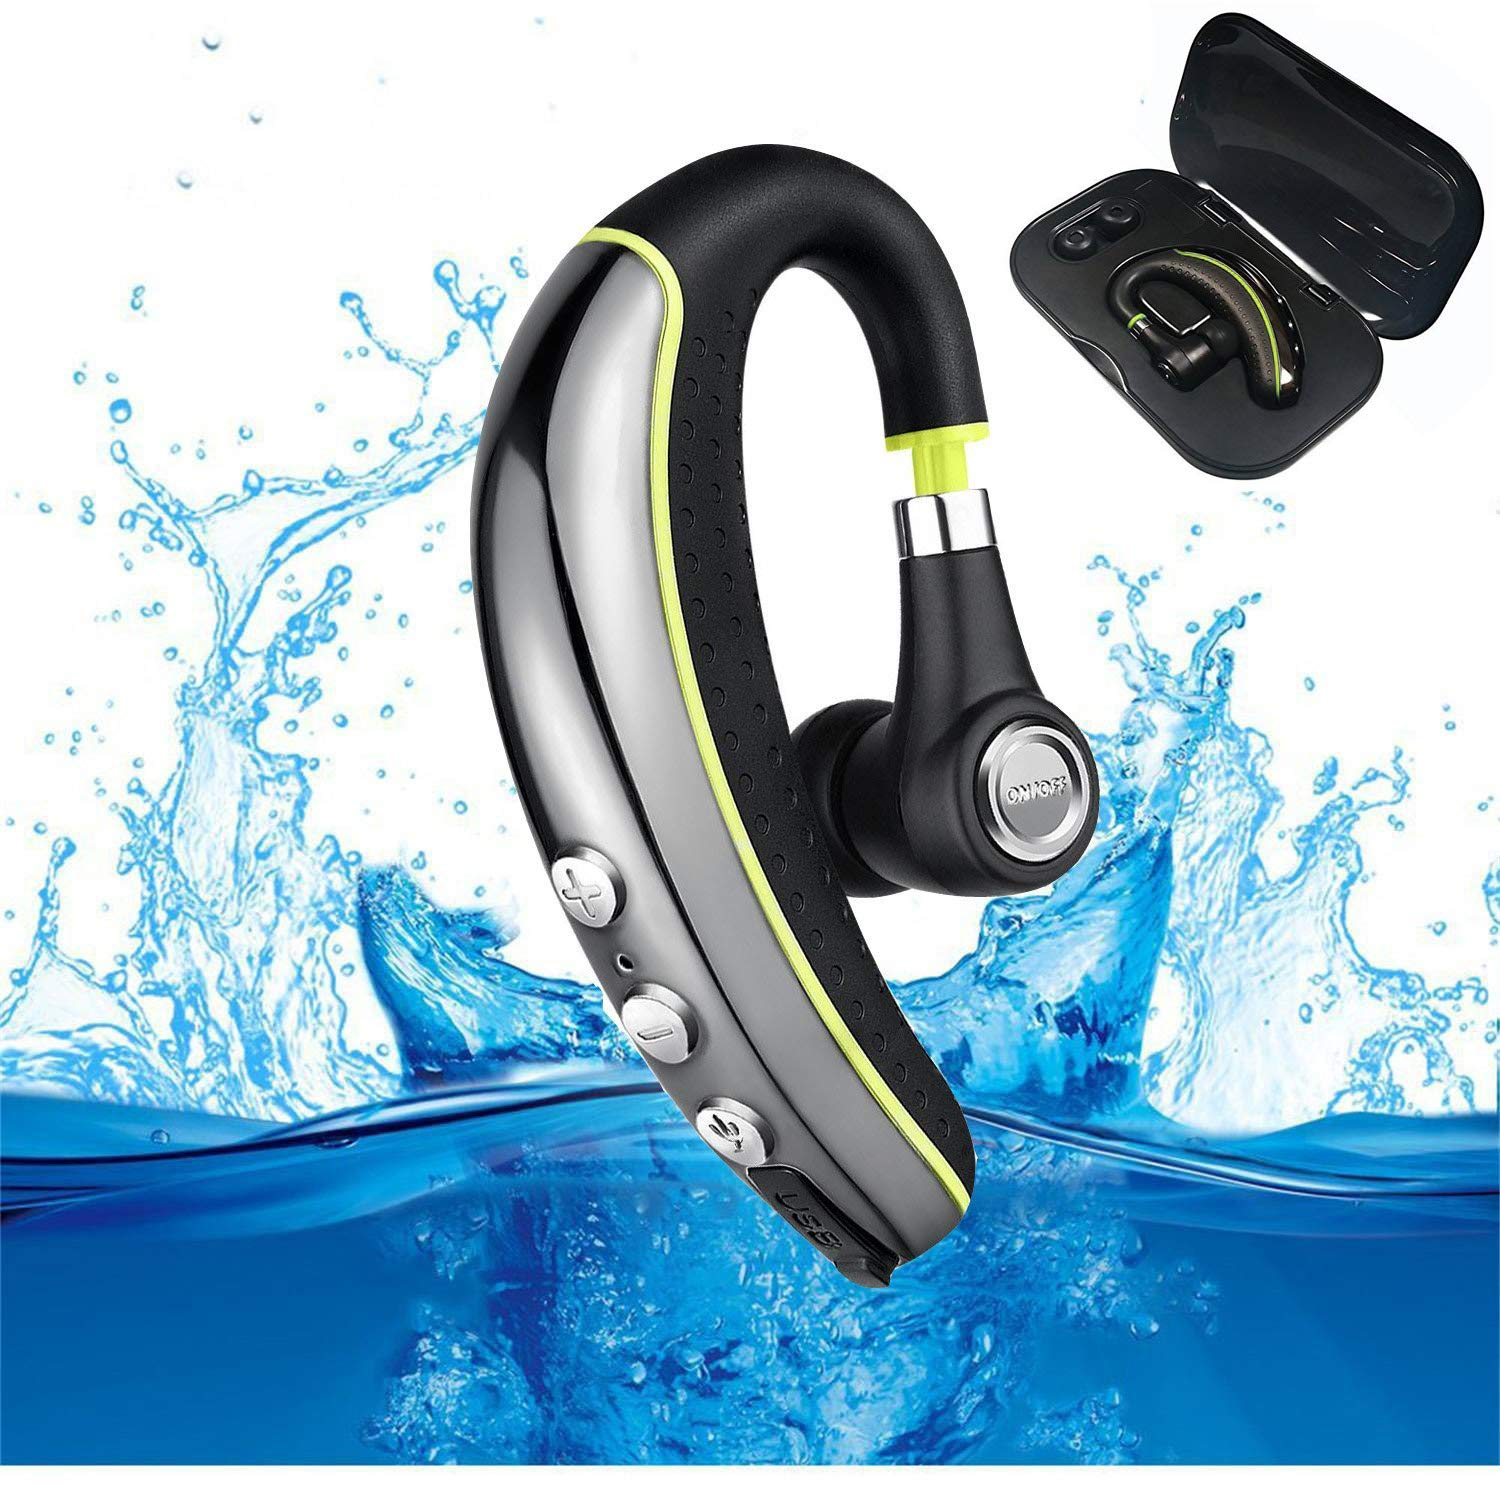 Bluetooth Headset V4.1, MLevis Wireless Business Earpiece Trucker in-Ear Earbuds Headphones with Noise Reduction Mute Switch, Hands Free w/Mic for Office/Business/Workout/Driver/Trucker-Yellow 4334962853